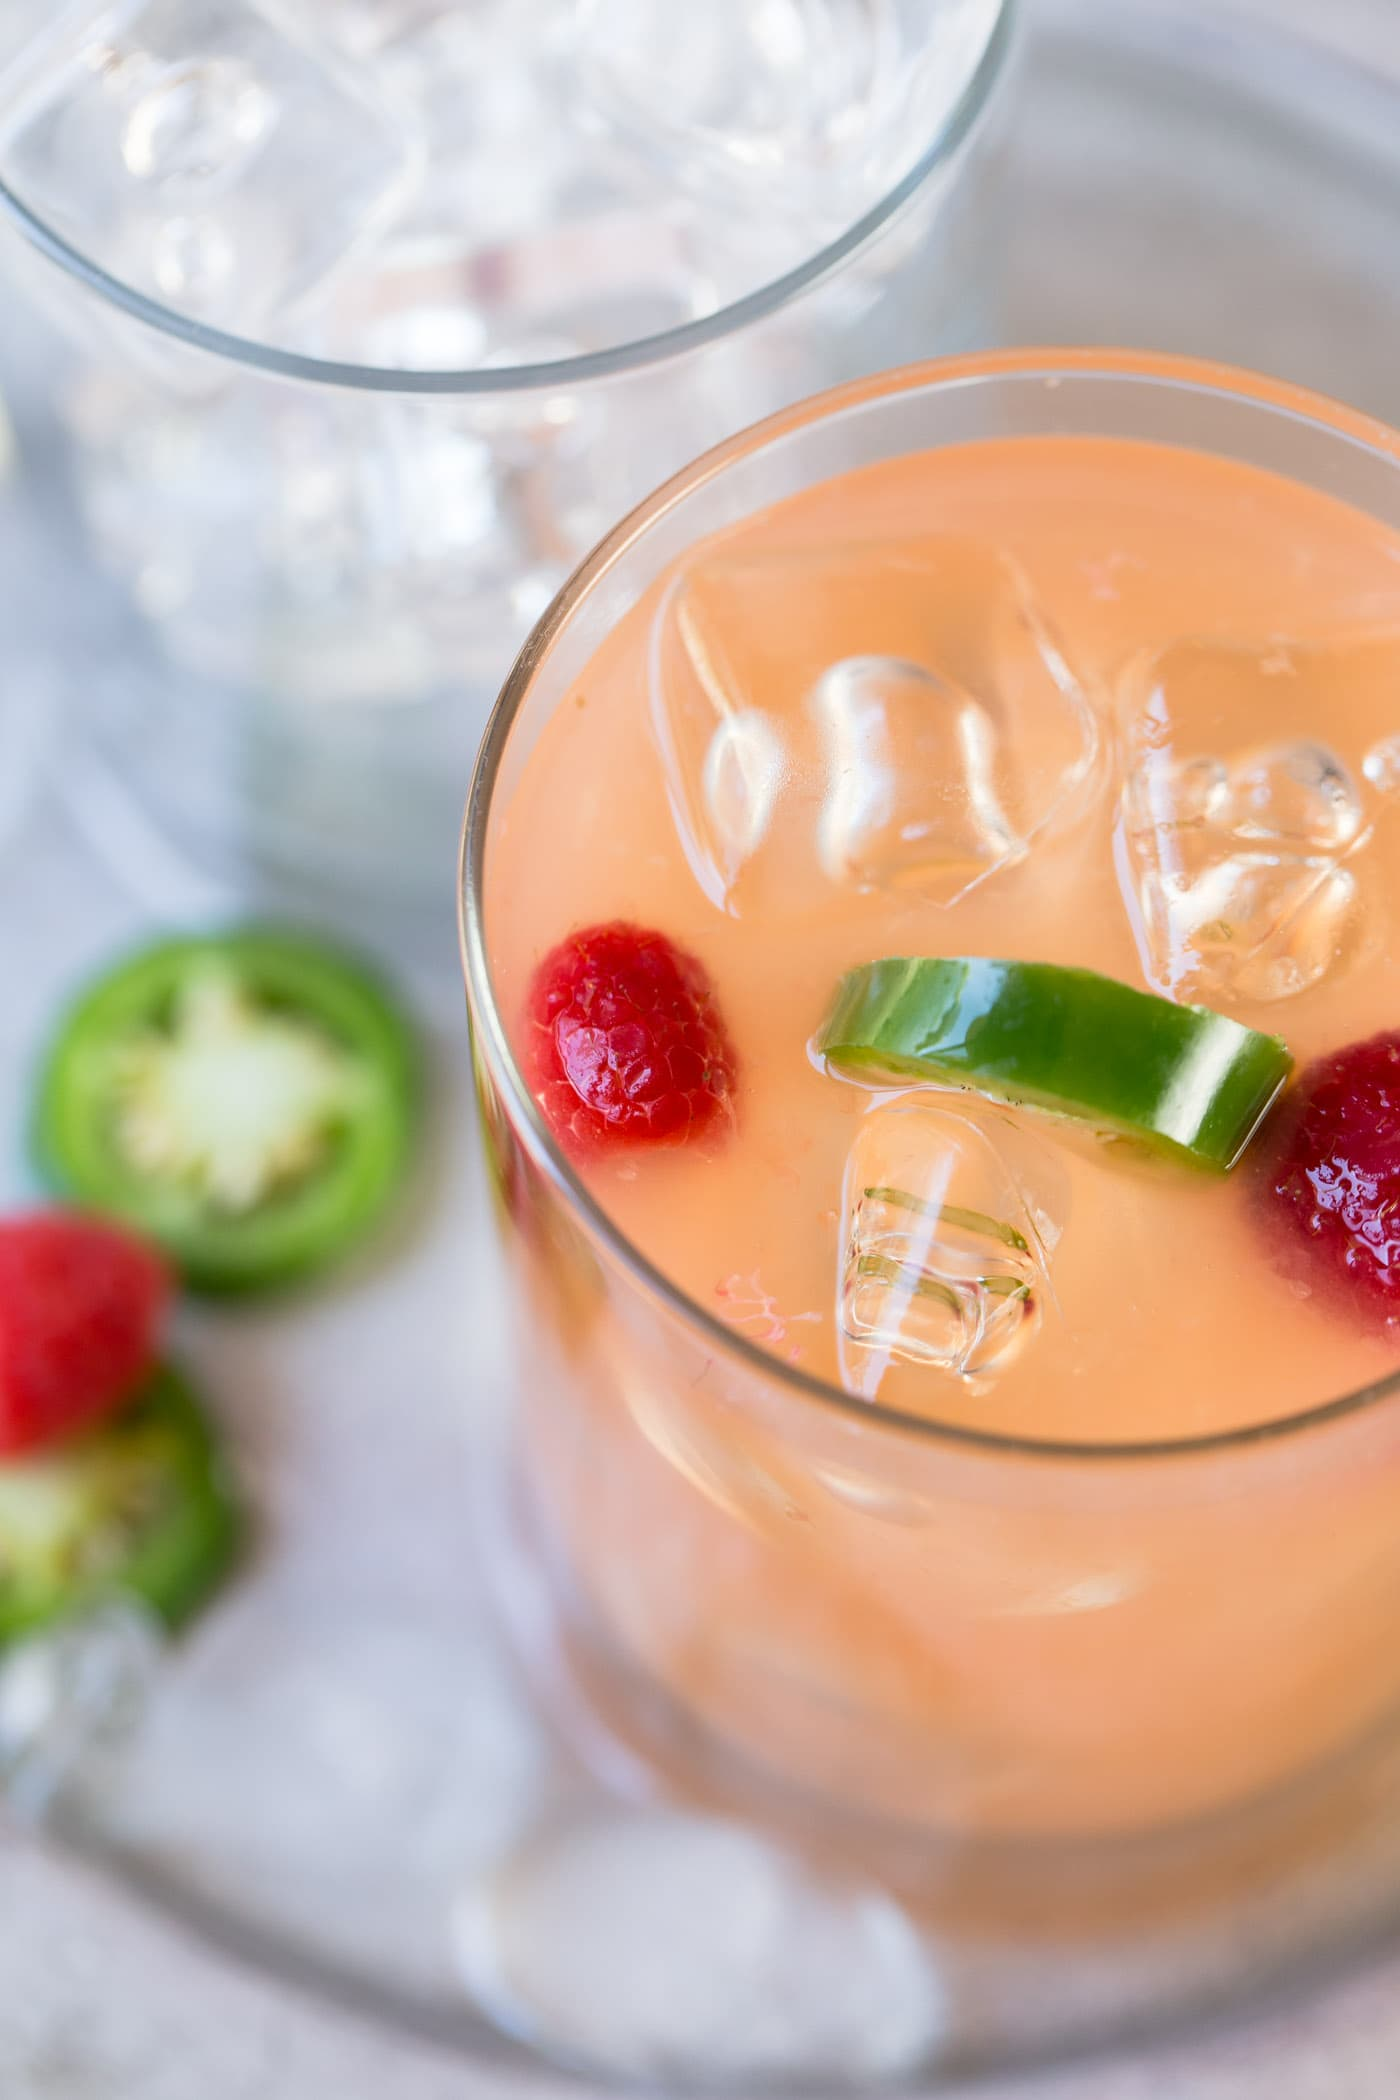 Take your love of tequila beyond the margarita with these refreshing Raspberry Palomas, a delicious tequila cocktail made with citrus juices, raspberries and a hit of heat from jalapenos.